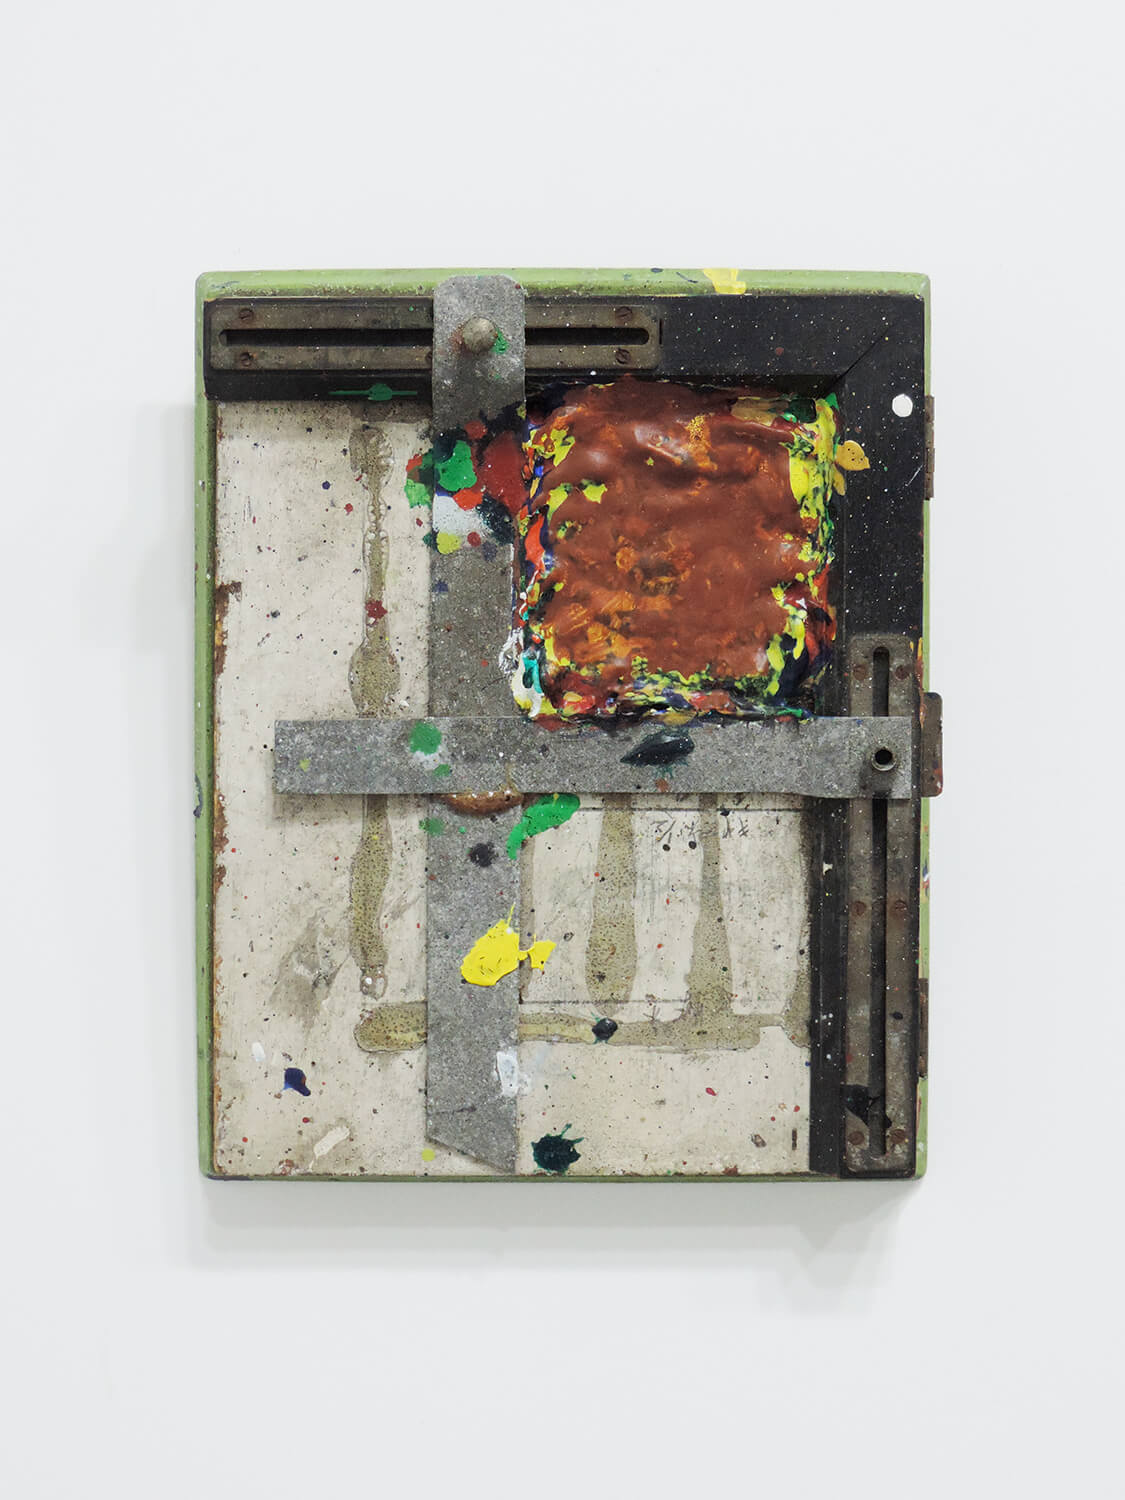 <b>Untitled</b><br>Acrylic on wood and metal 23.2 x 18.5 x 5.1 cm 2004